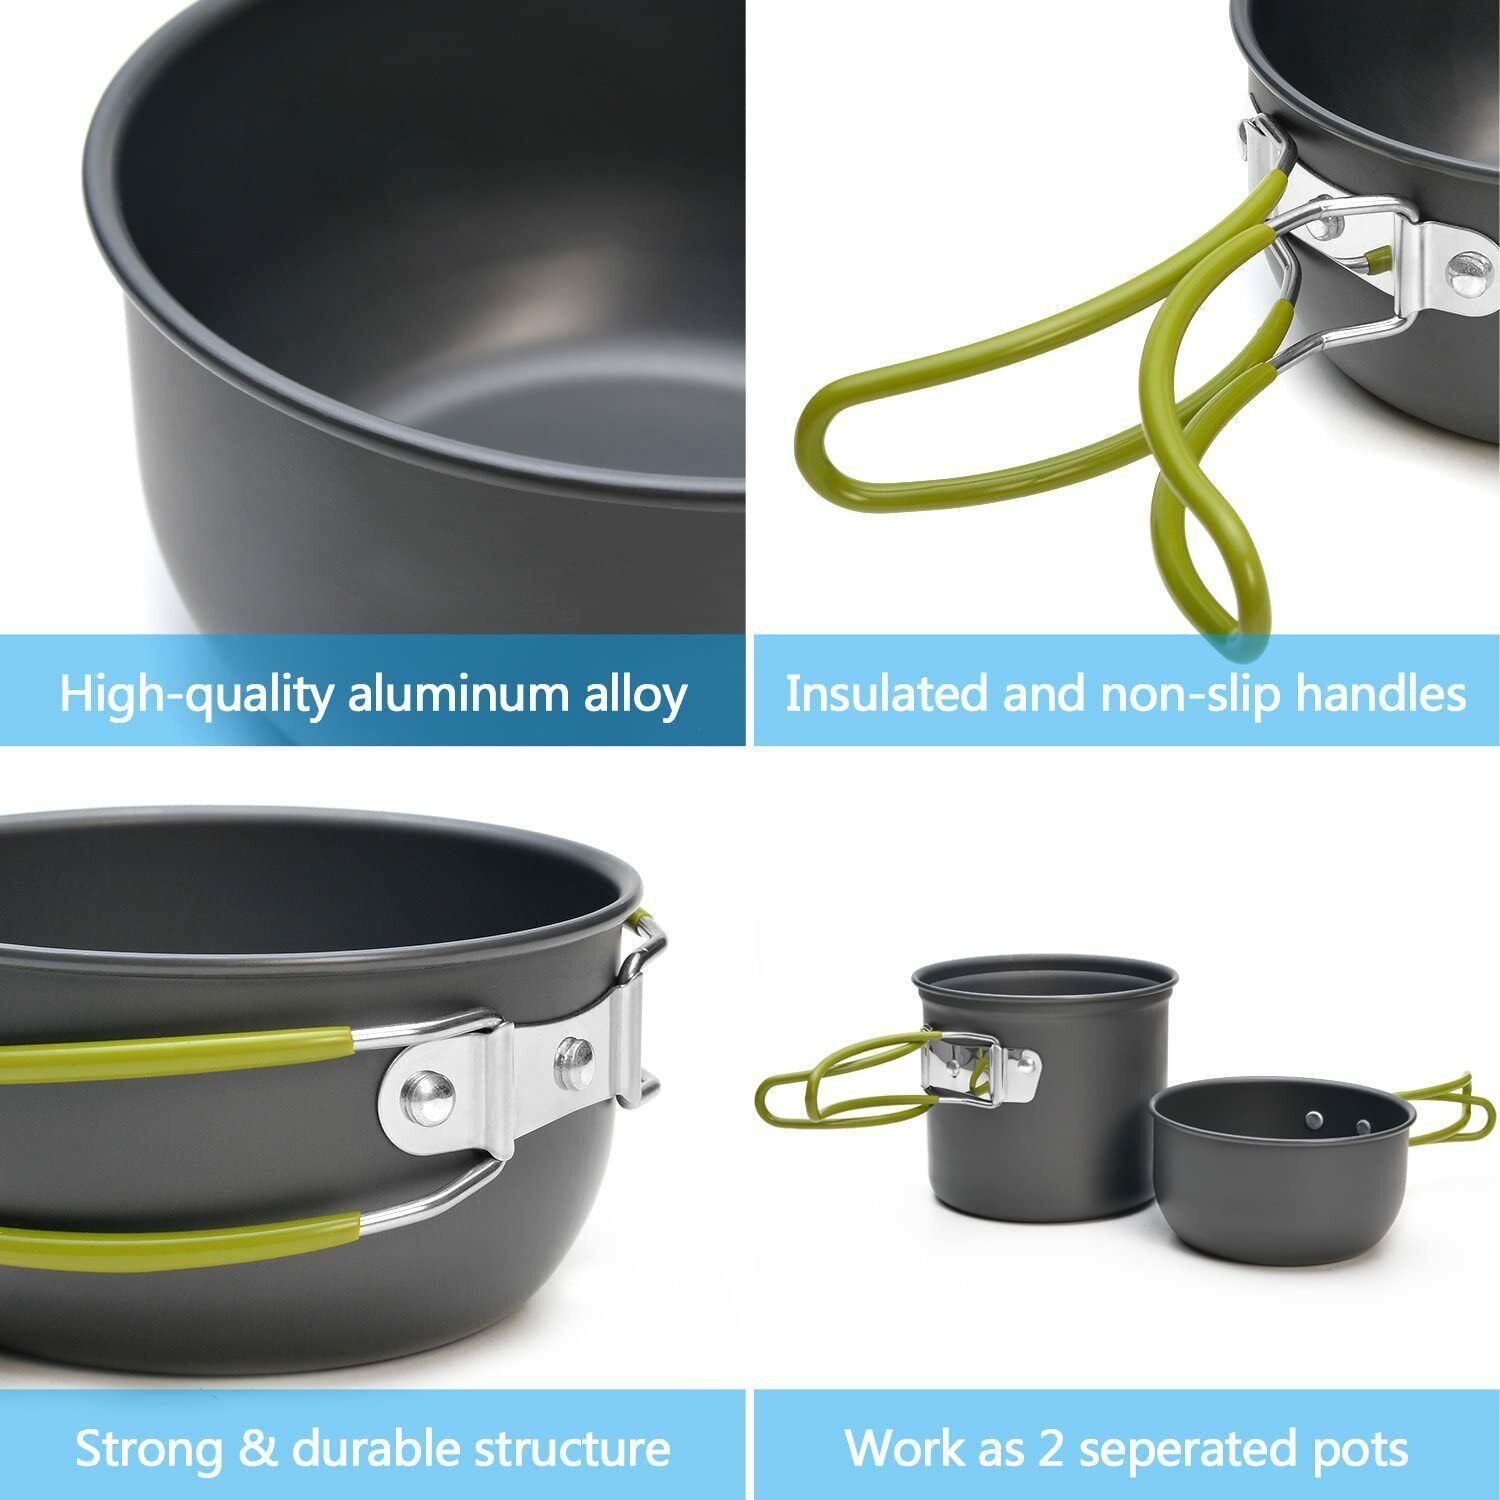 Odoland Camping Cookware Stove Carabiner Canister Stand Tripod And Stainless Ste - $42.00